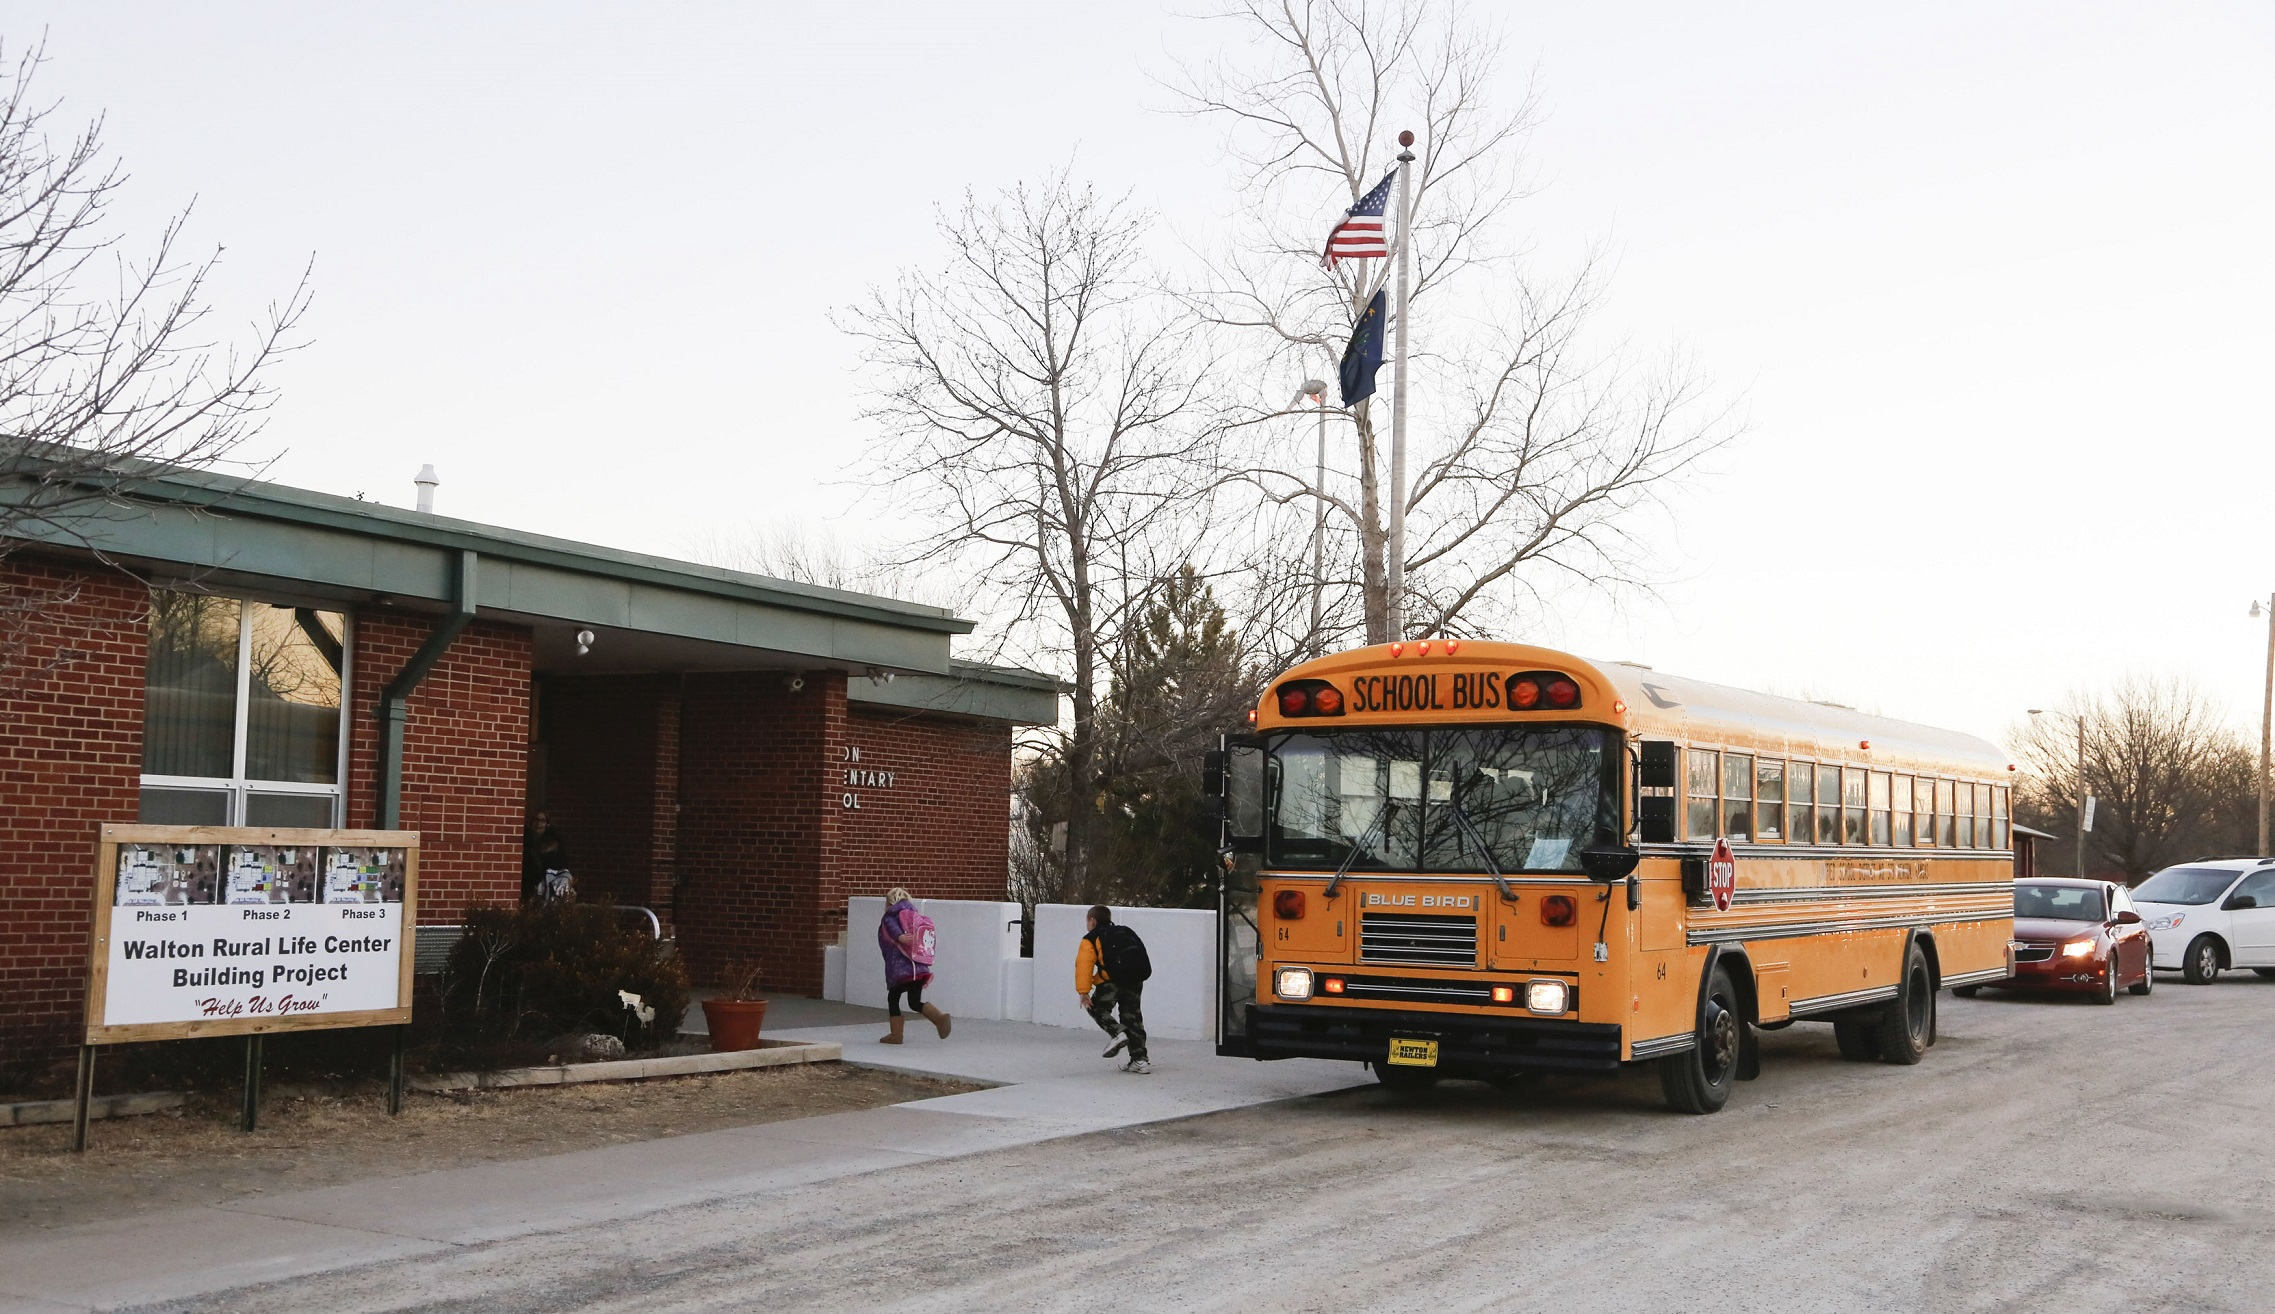 Students arrive at the Walton Rural Life Center Elementary School, in Walton, Kansas, January 18, 2013. Students at the school do farm chores at the beginning of each school day. The Walton Rural Life Center - a kindergarten through fourth grade charter school in rural Kansas - uses agriculture to teach students about math, science, economics. REUTERS/Jeff Tuttle (UNITED STATES - Tags: EDUCATION AGRICULTURE SOCIETY) - RTR3DVPU